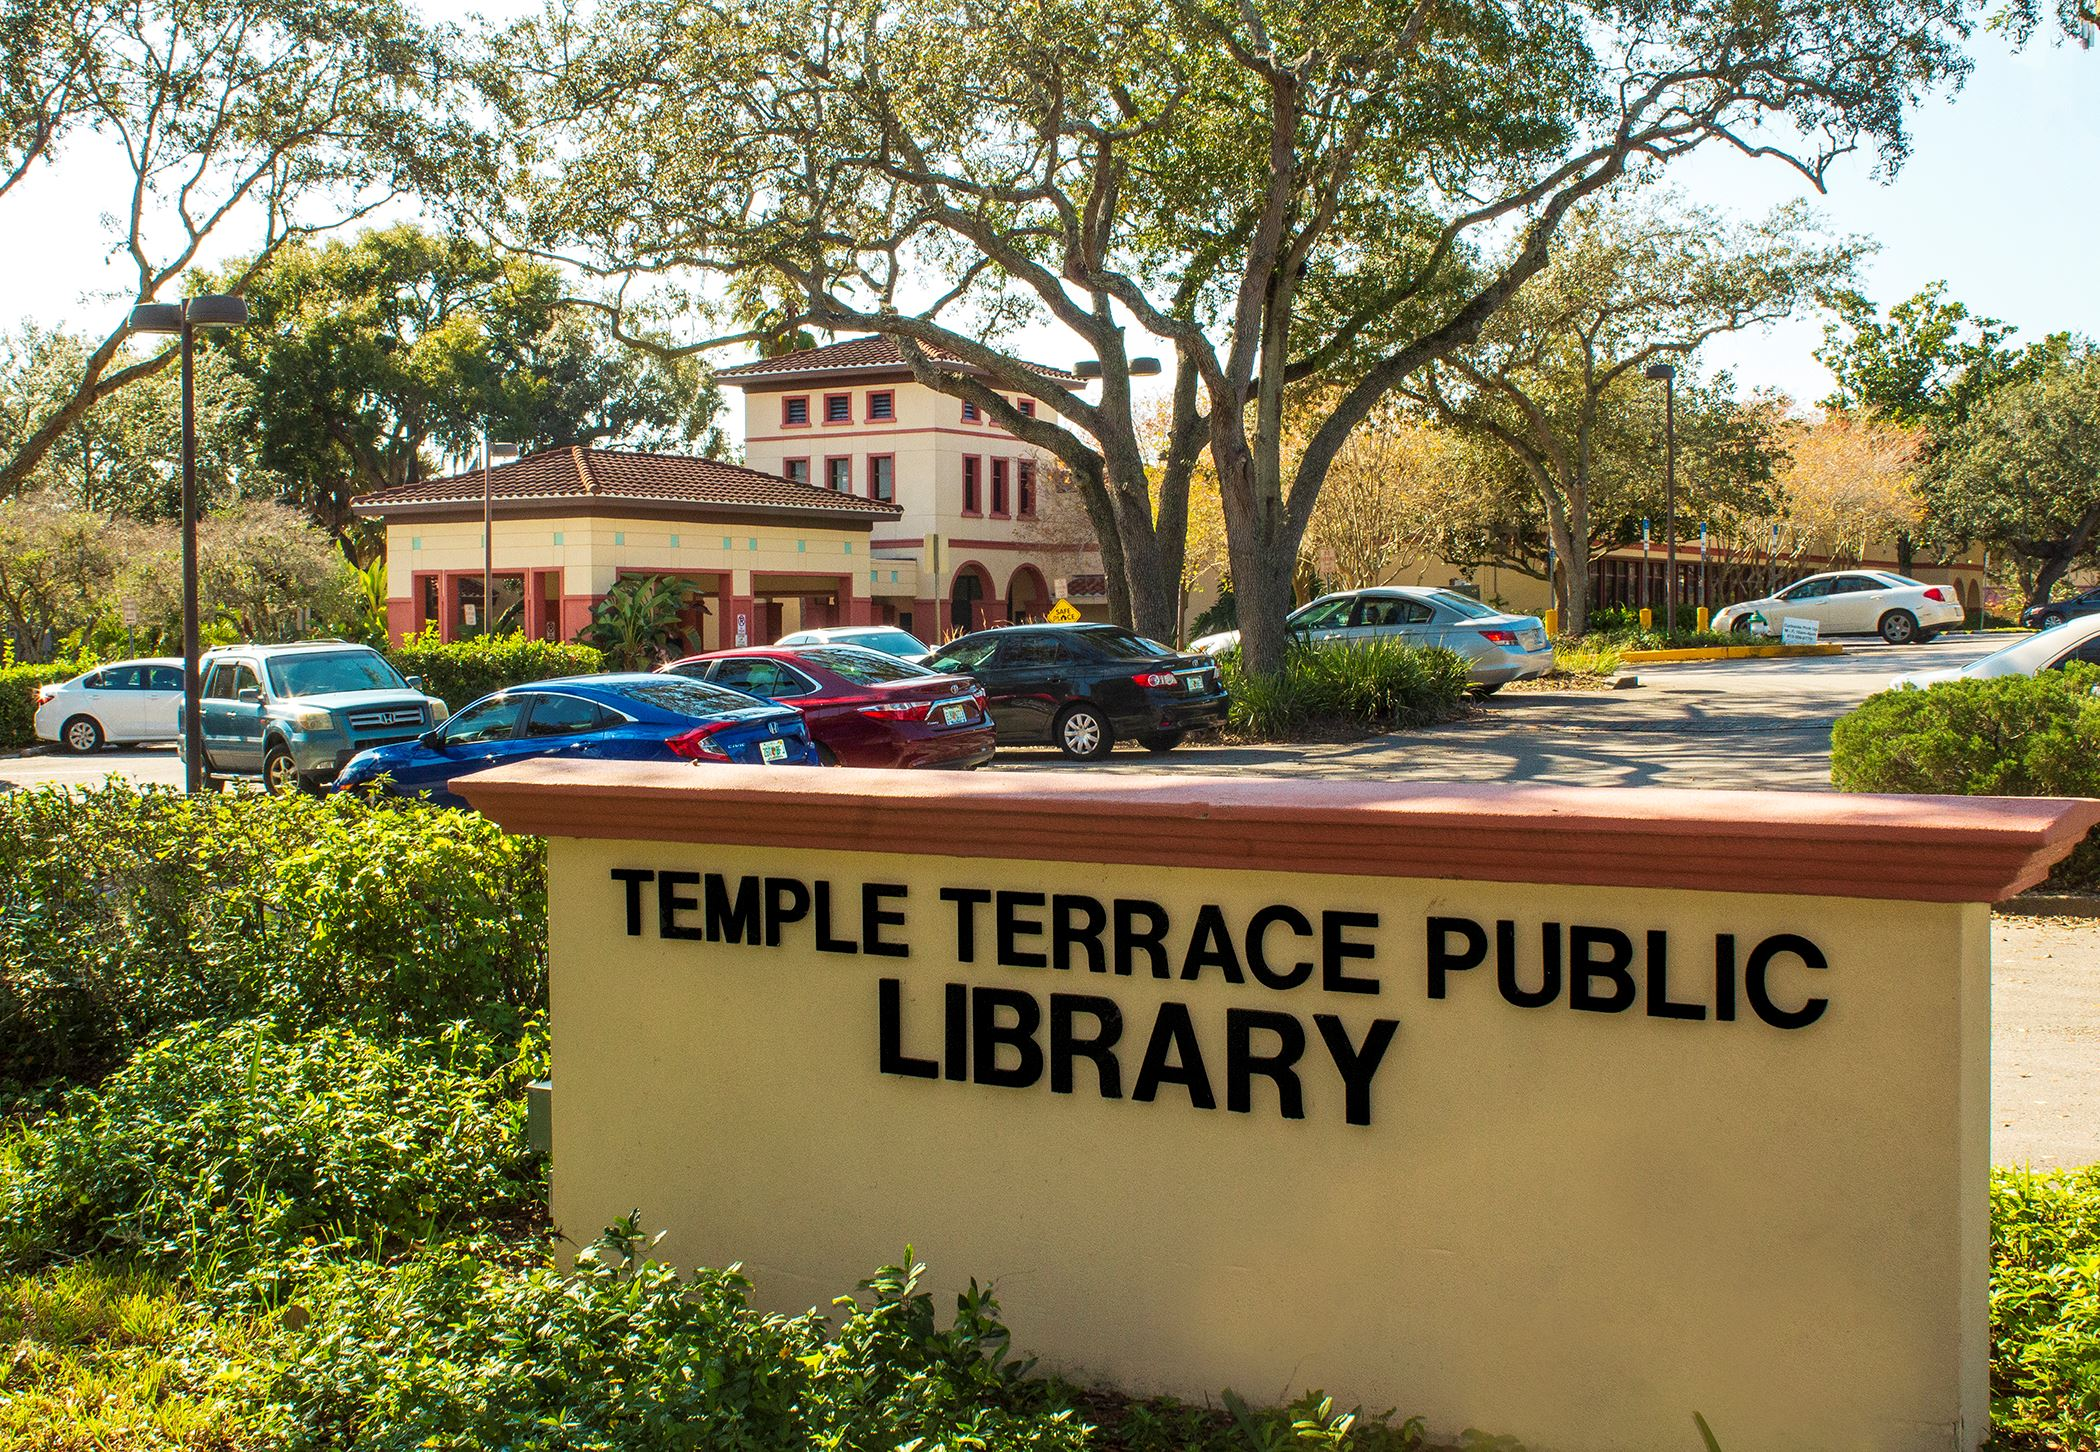 Temple Terrace Public library